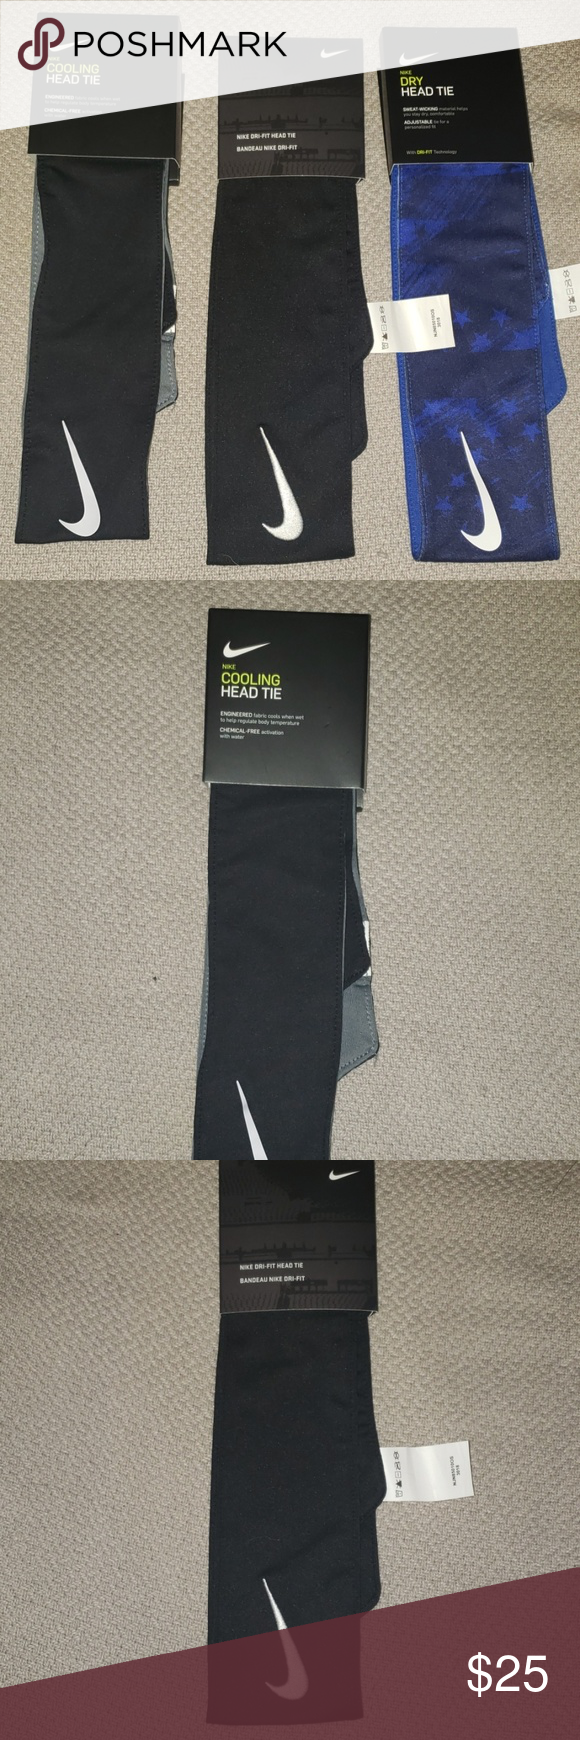 Nike Headbands Nike Tie Headbands 1 Nike Cooling Head Tie 2 Nike Dry Heas Tie In Americana 3 Nike Basic Dri F Nike Headbands Black Nikes Nike Tie Headbands